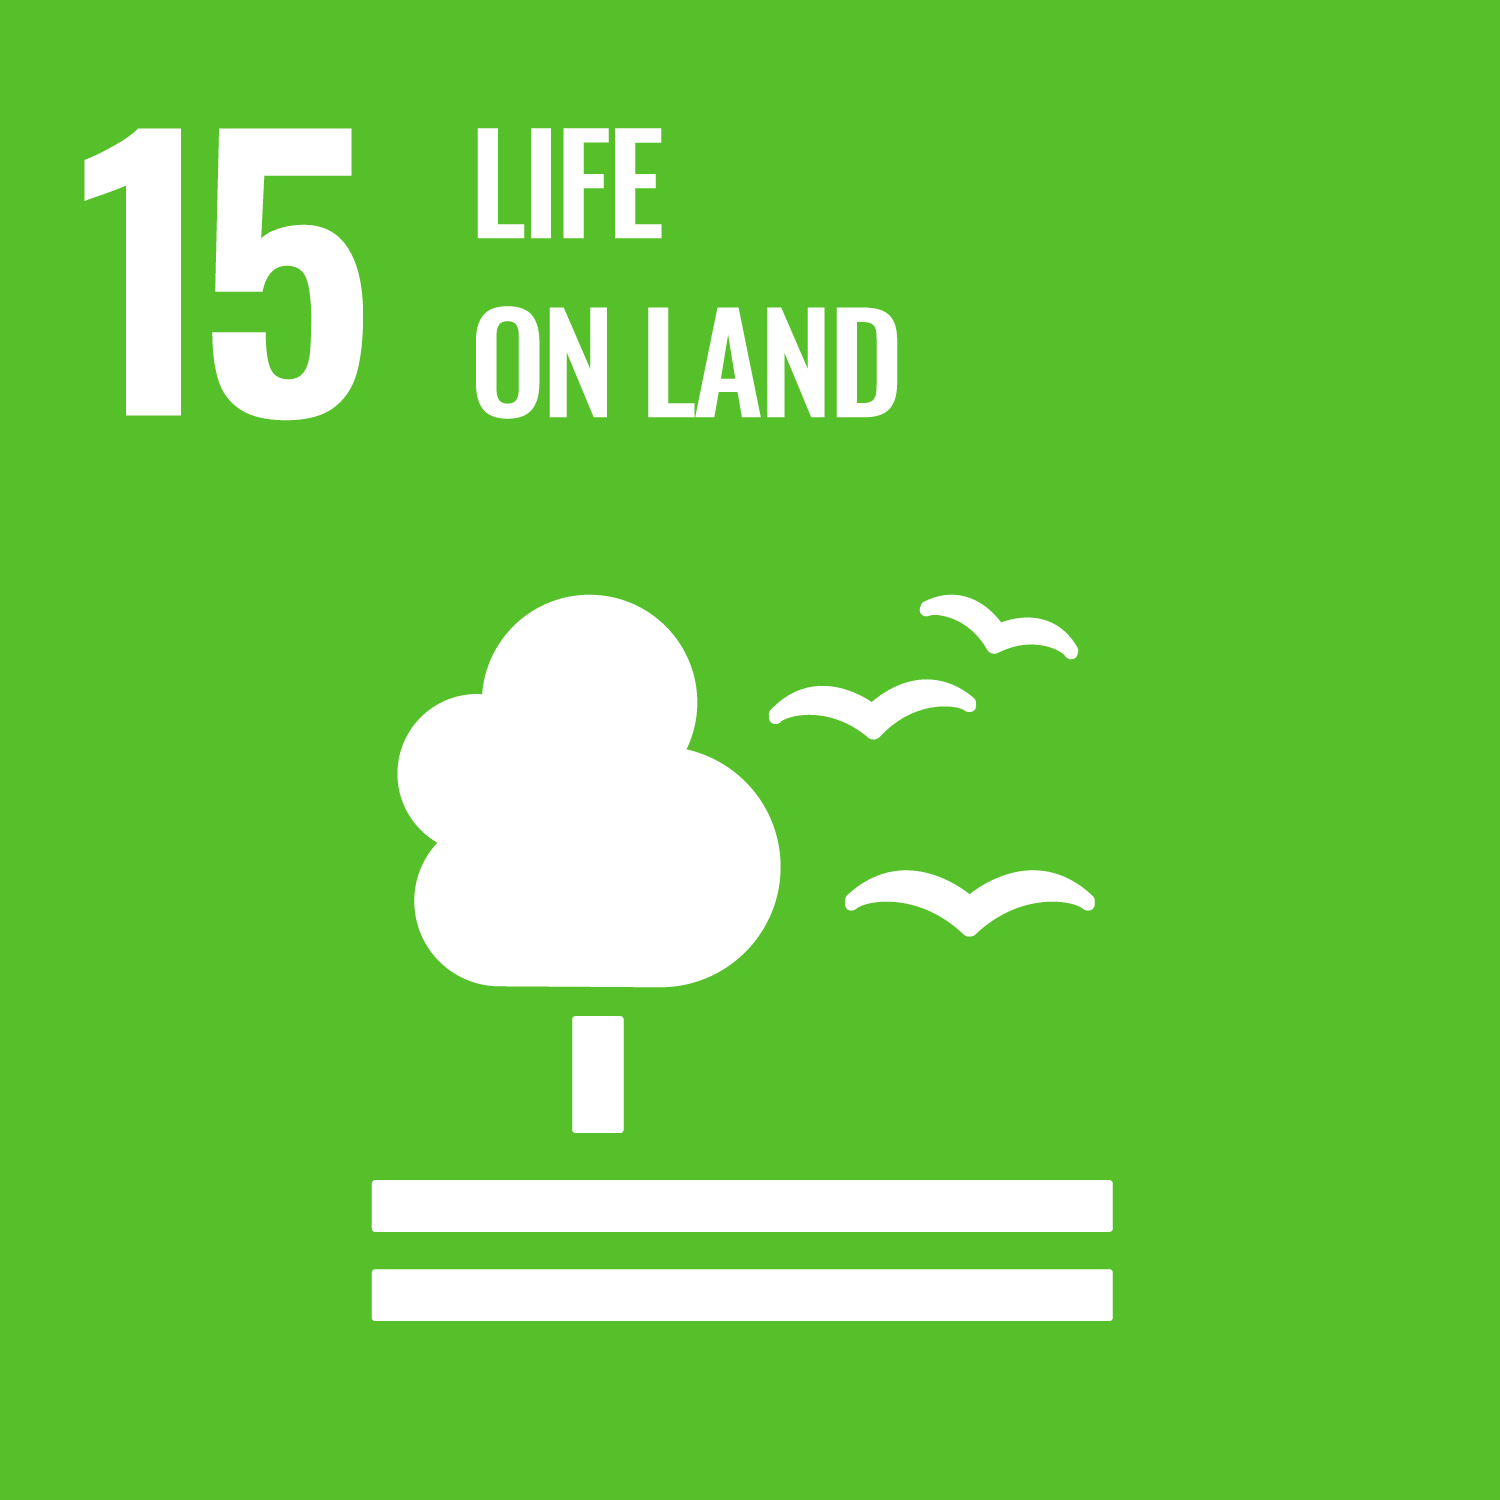 Icon for UN sustainable development goal 15 - Life on Lands